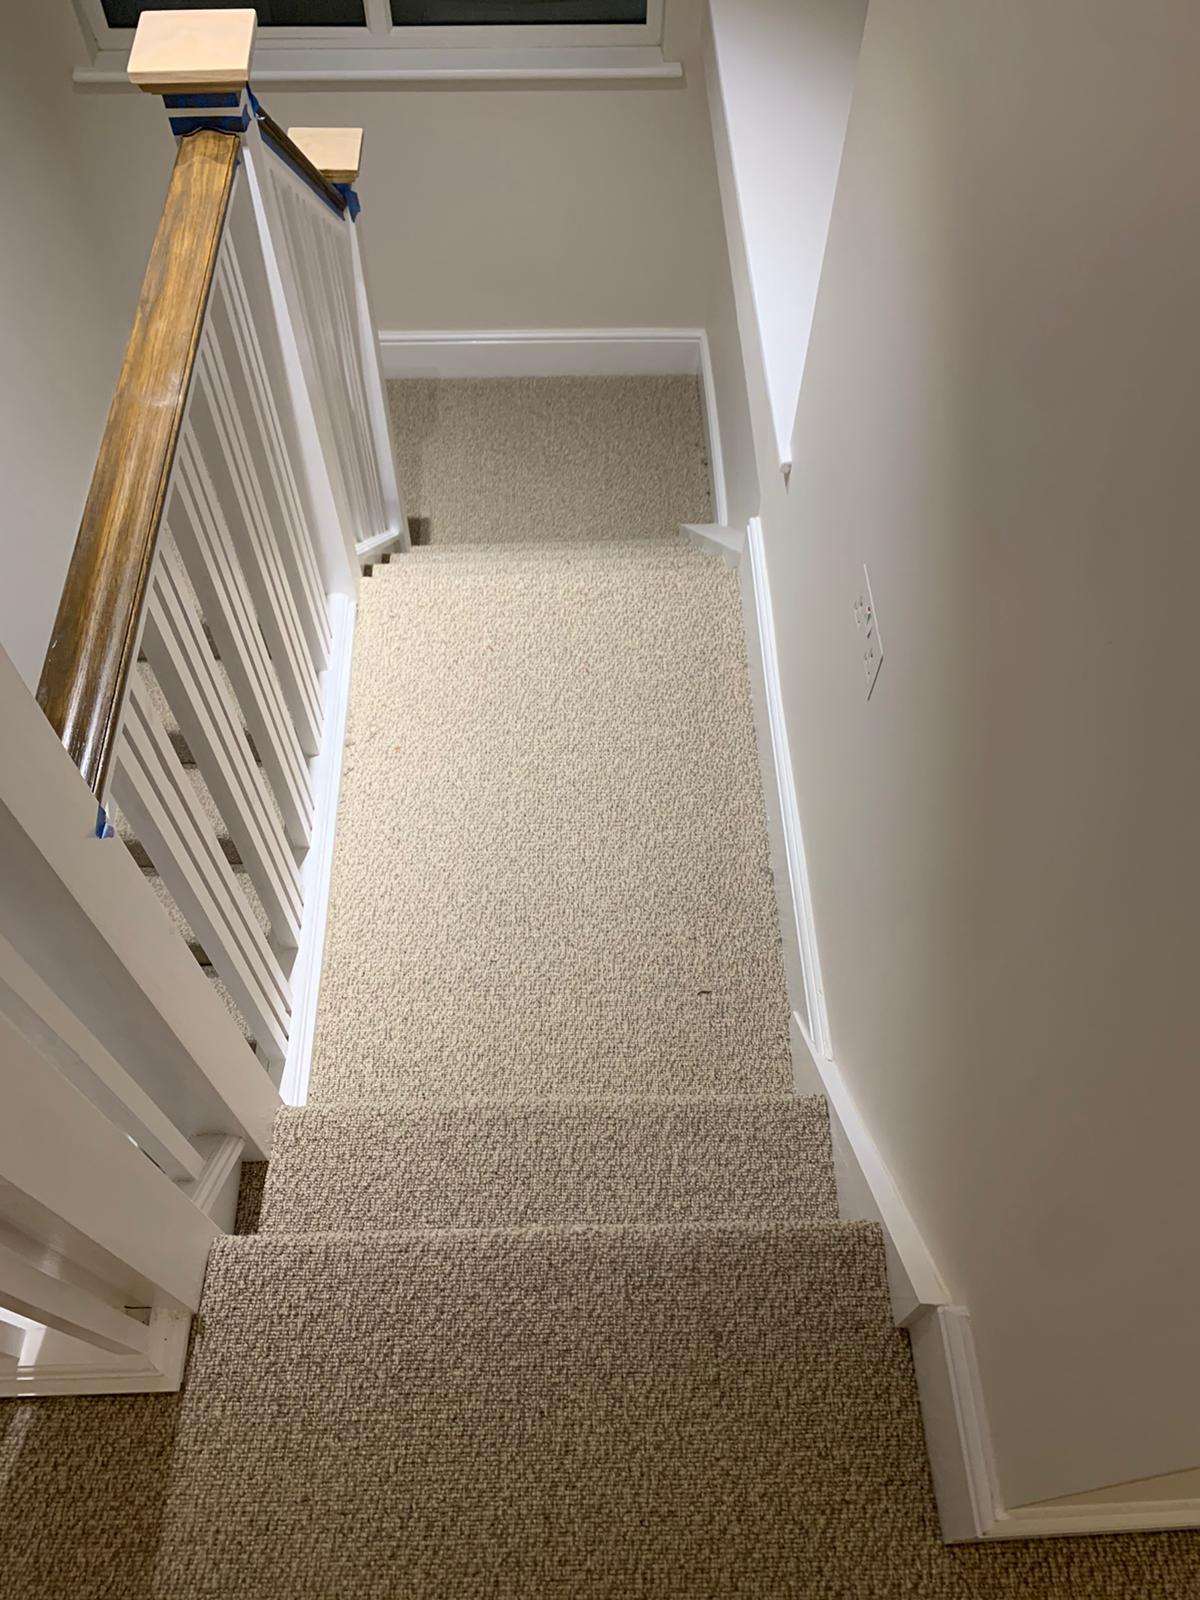 To supply & install light carpet to premises in Acton 2